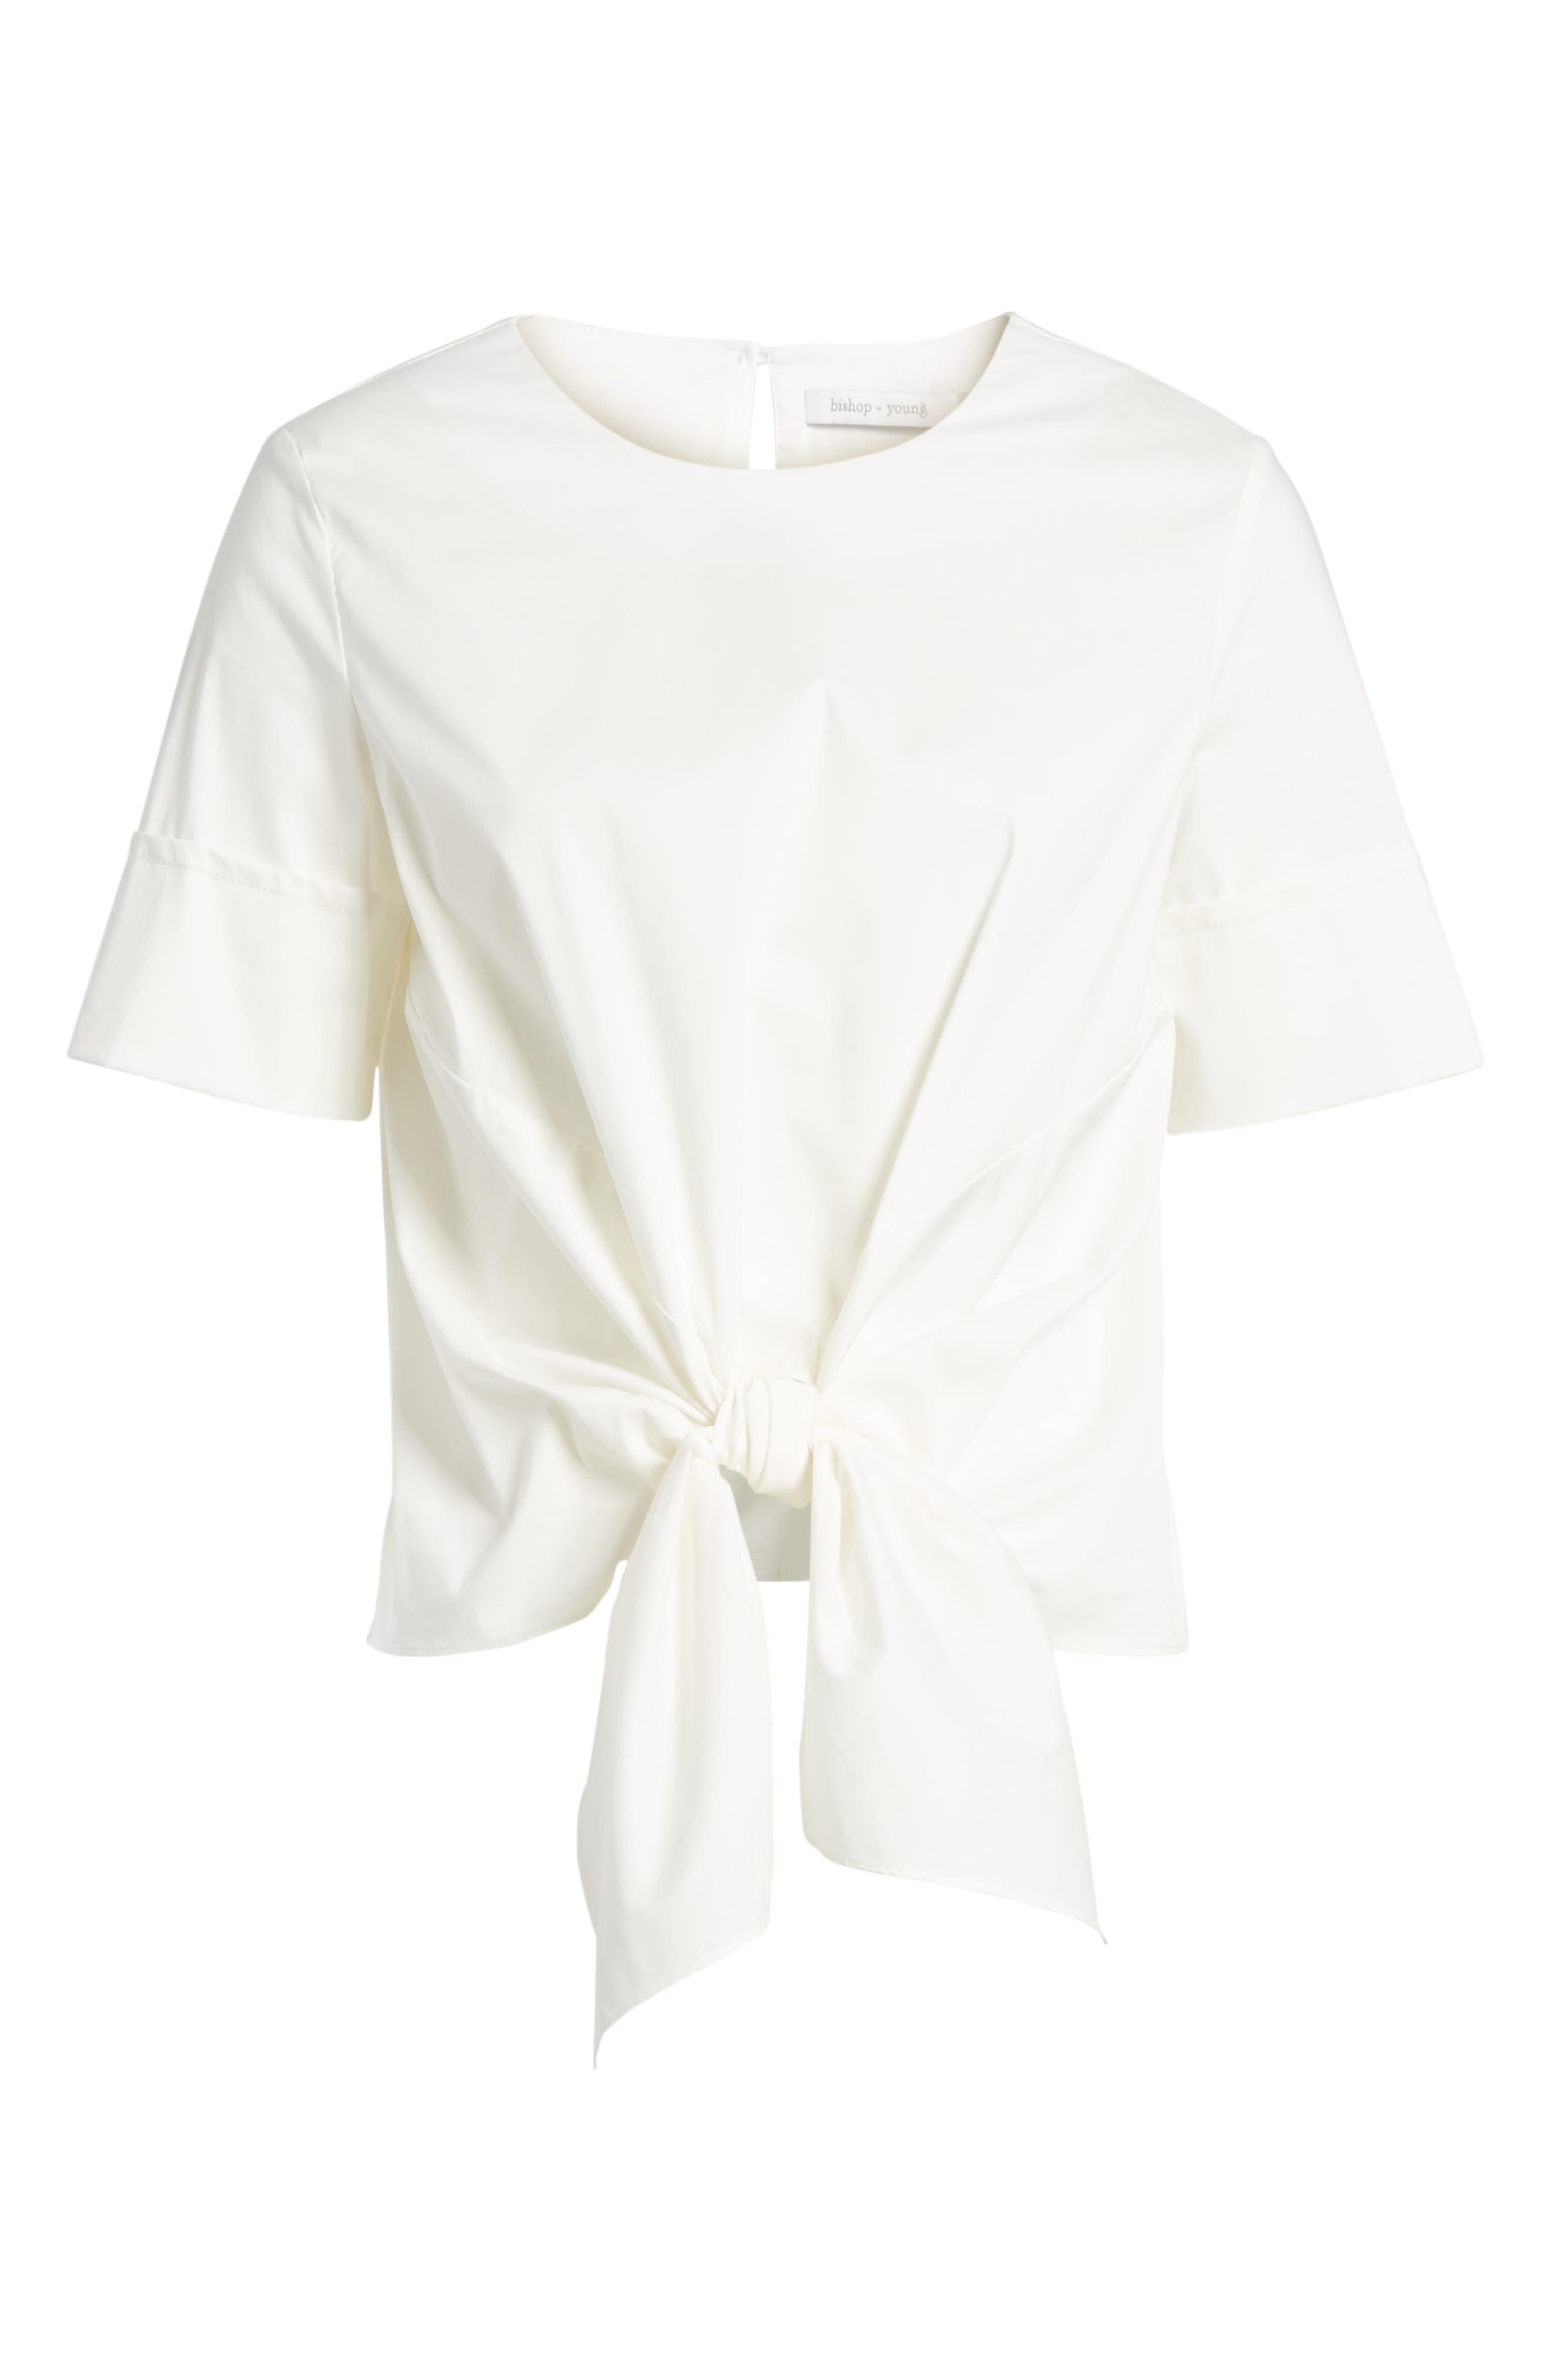 Bishop + Young Front Tie Blouse,                             Alternate thumbnail 7, color,                             WHITE